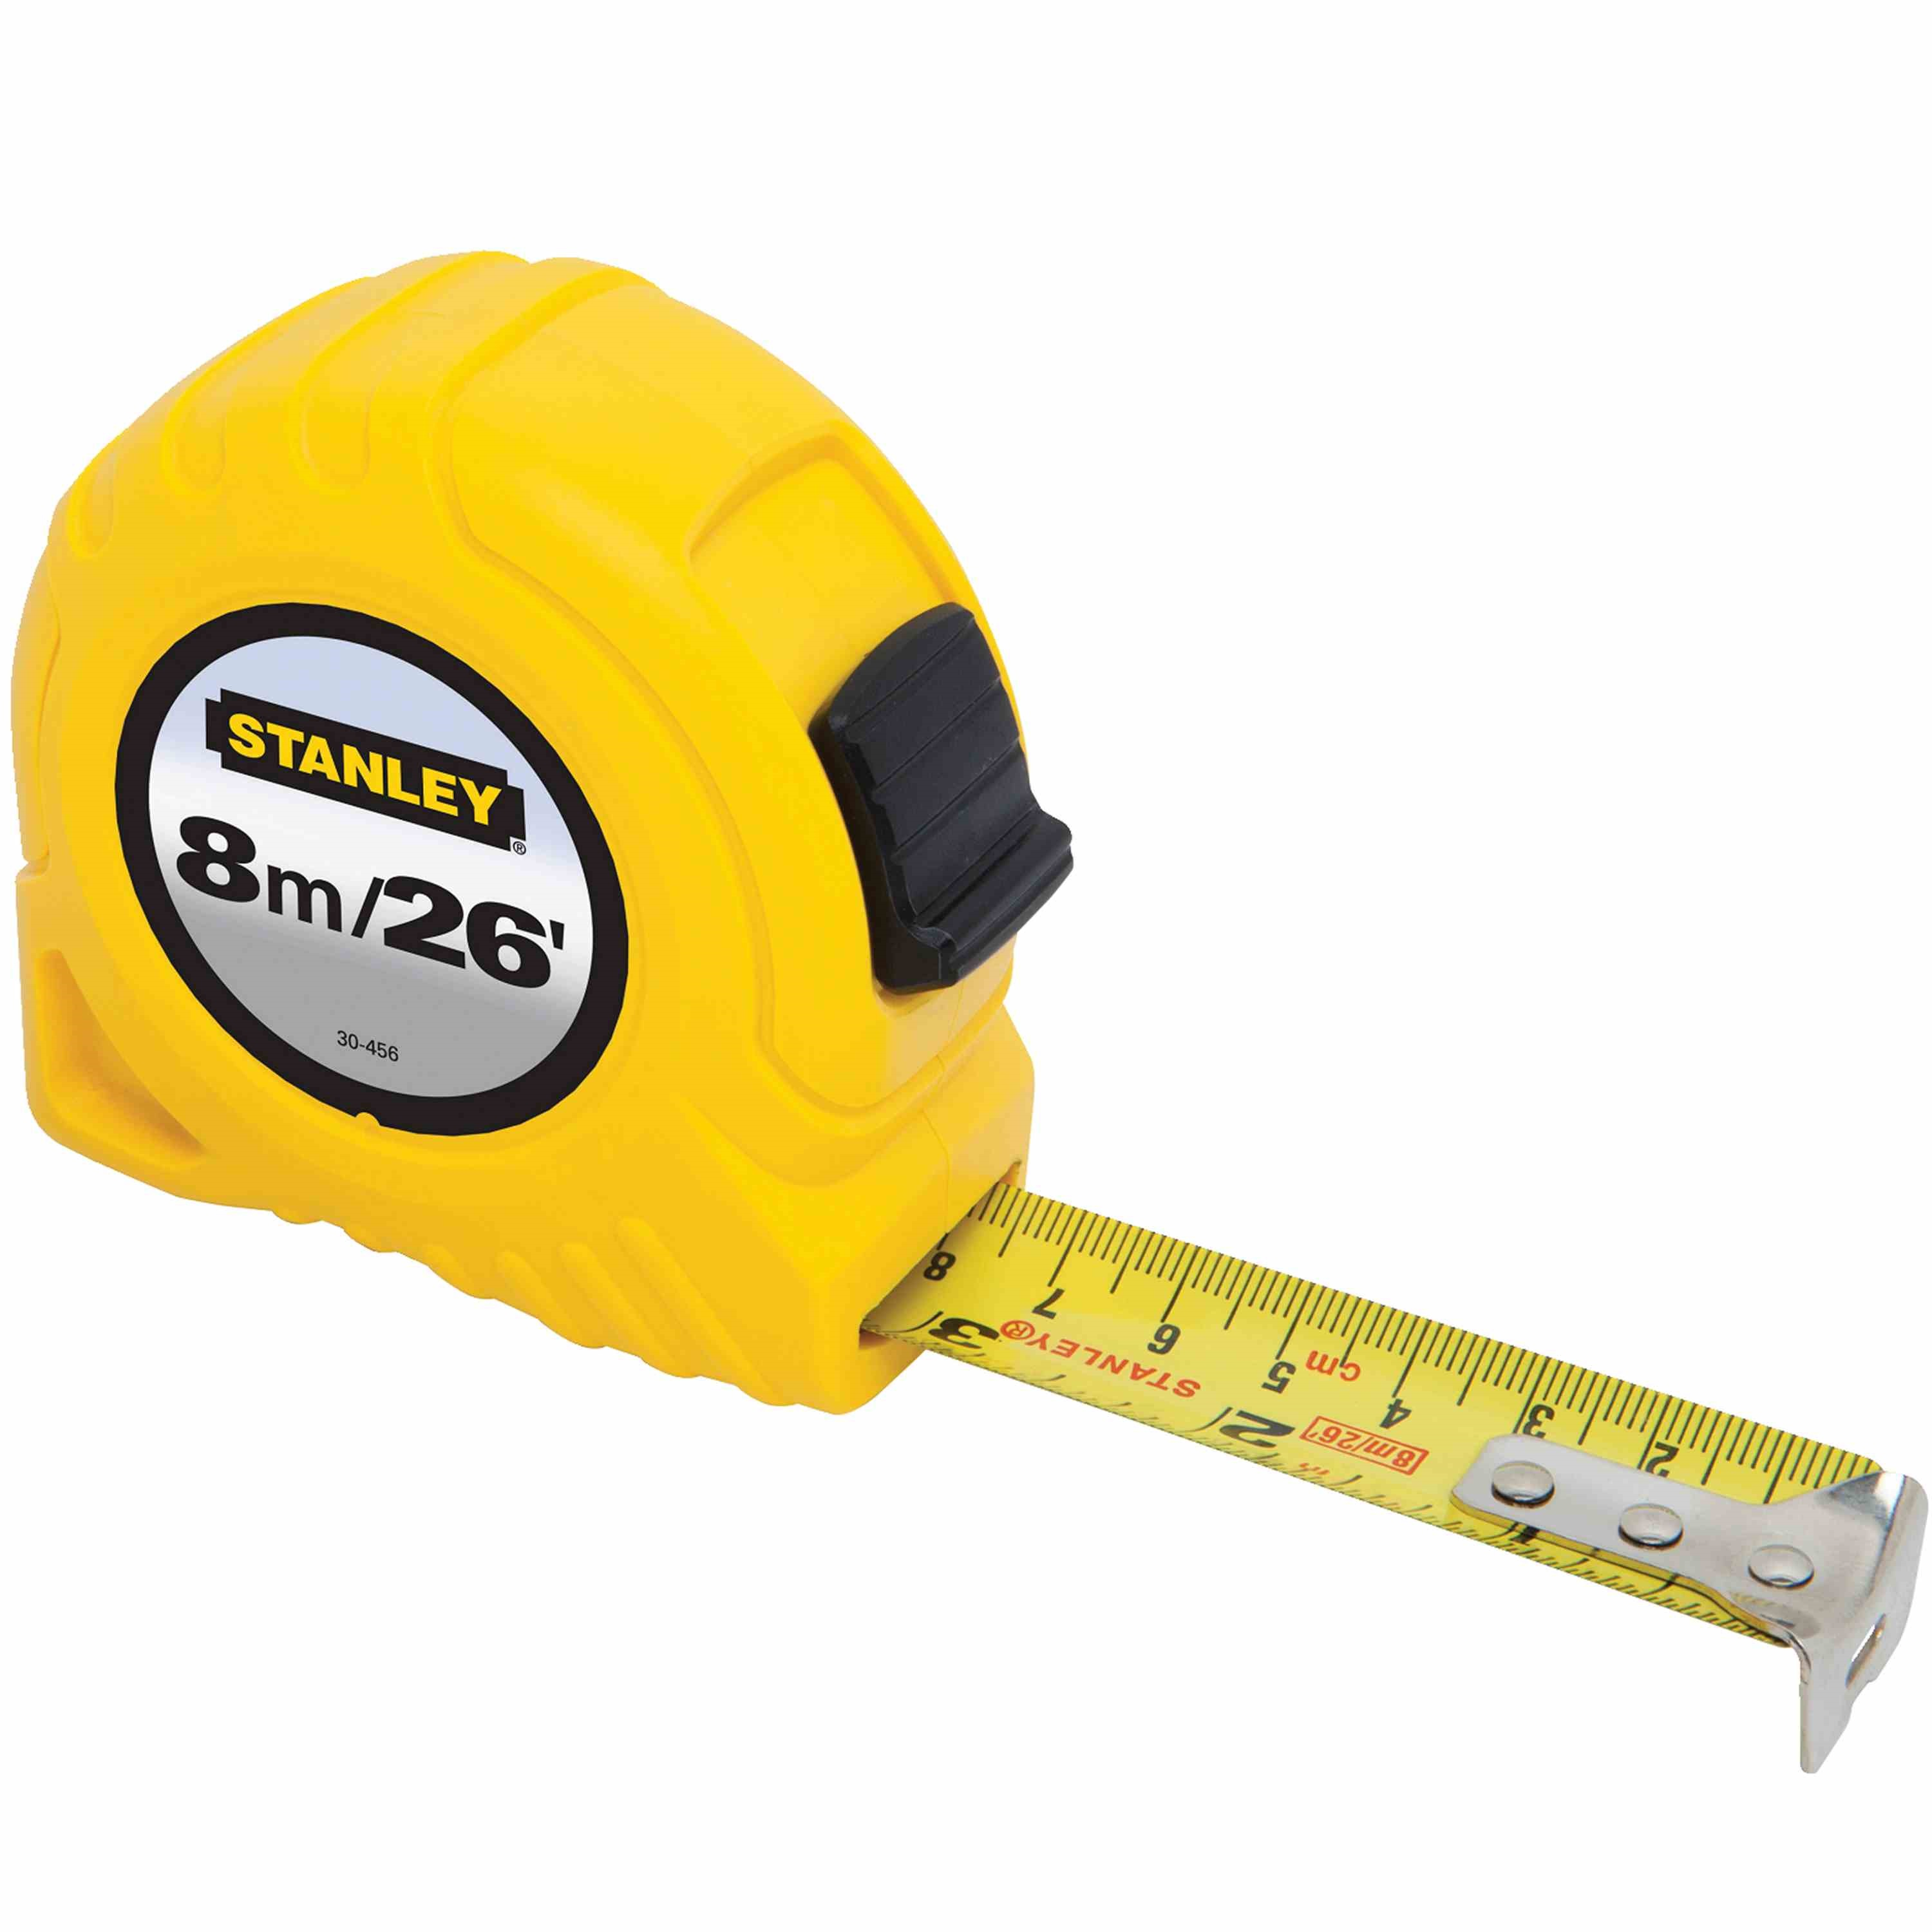 Stanley Tools - 8m26 ft Tape Measure - 30-456